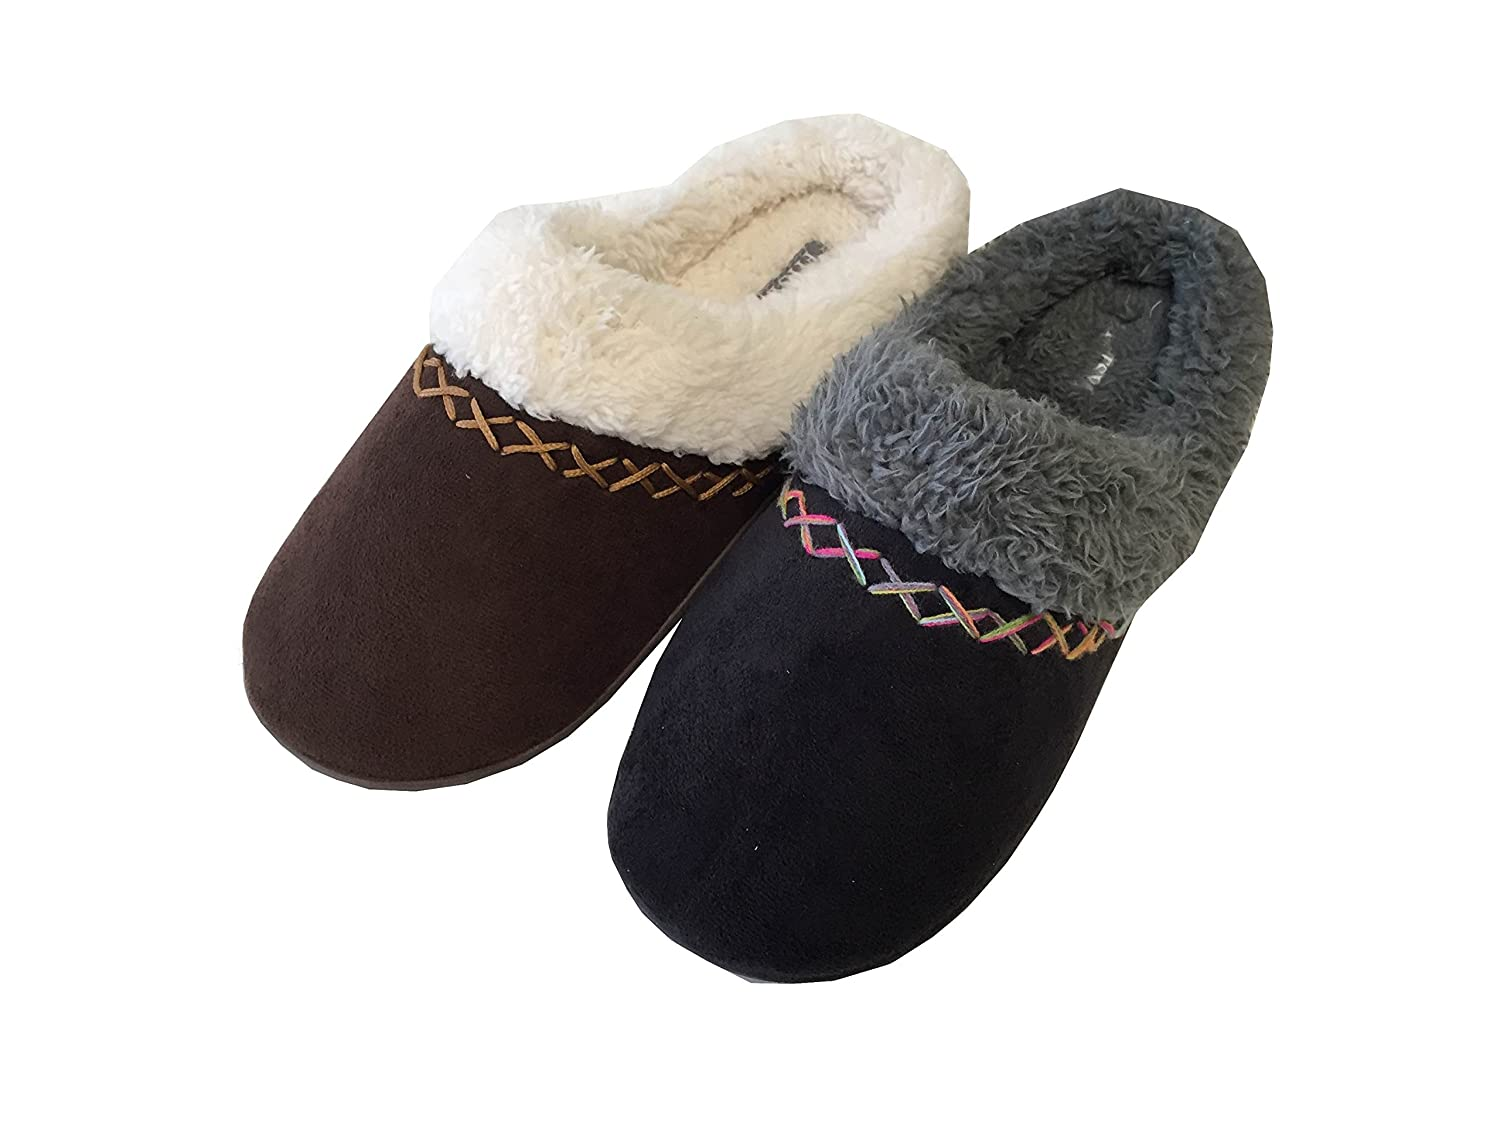 products cherie grosby comforter back slippers open womens invisible comfortable